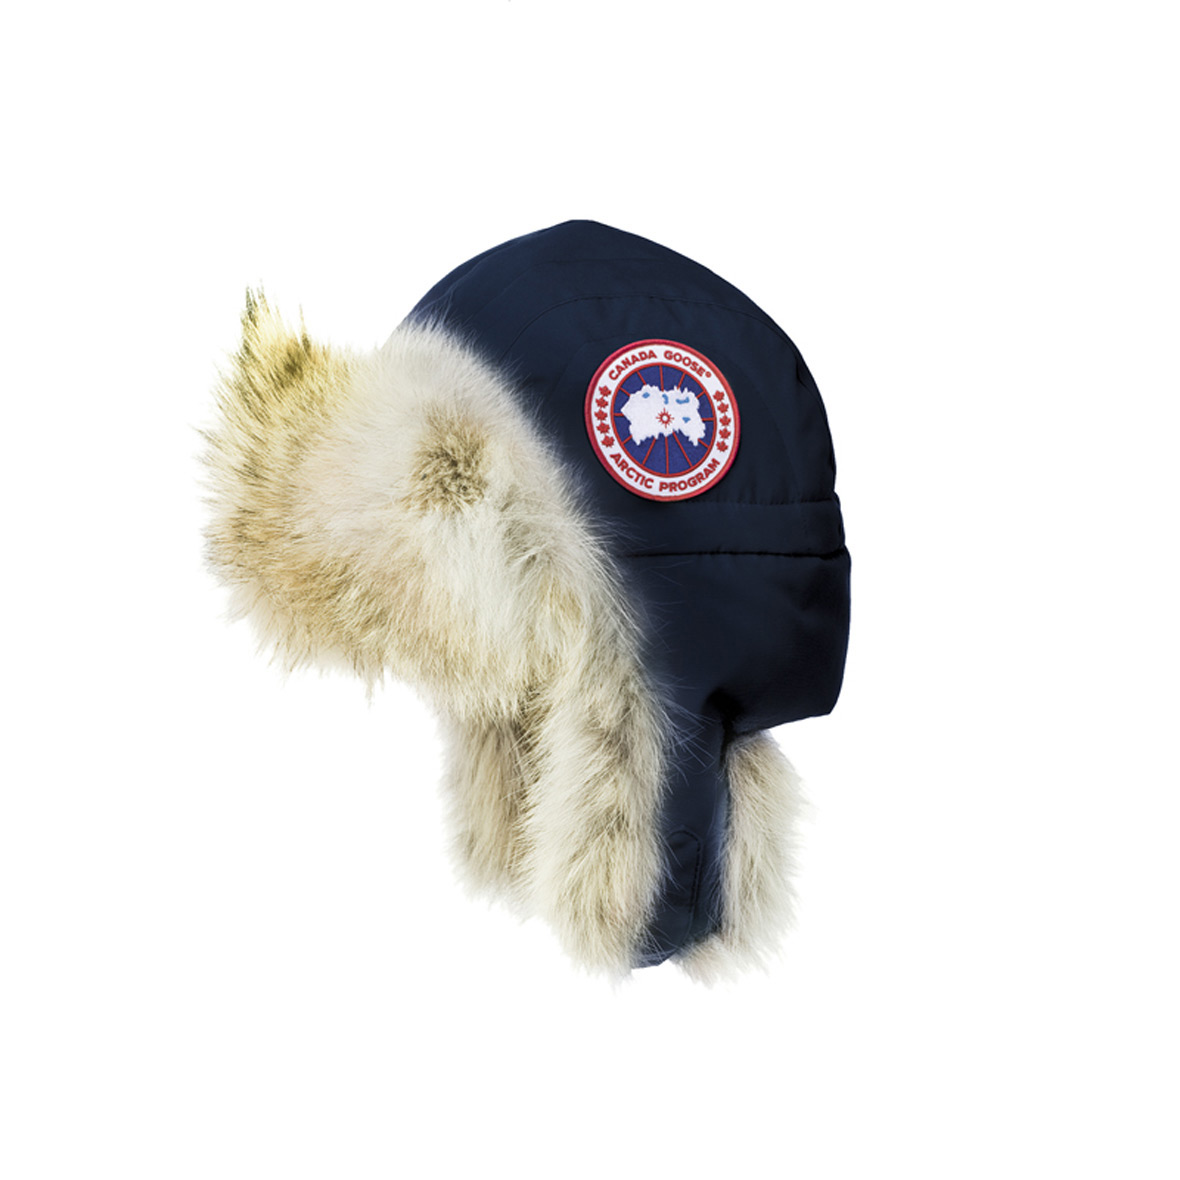 Canada Goose Unisex Aviator Hat NAVY For Men